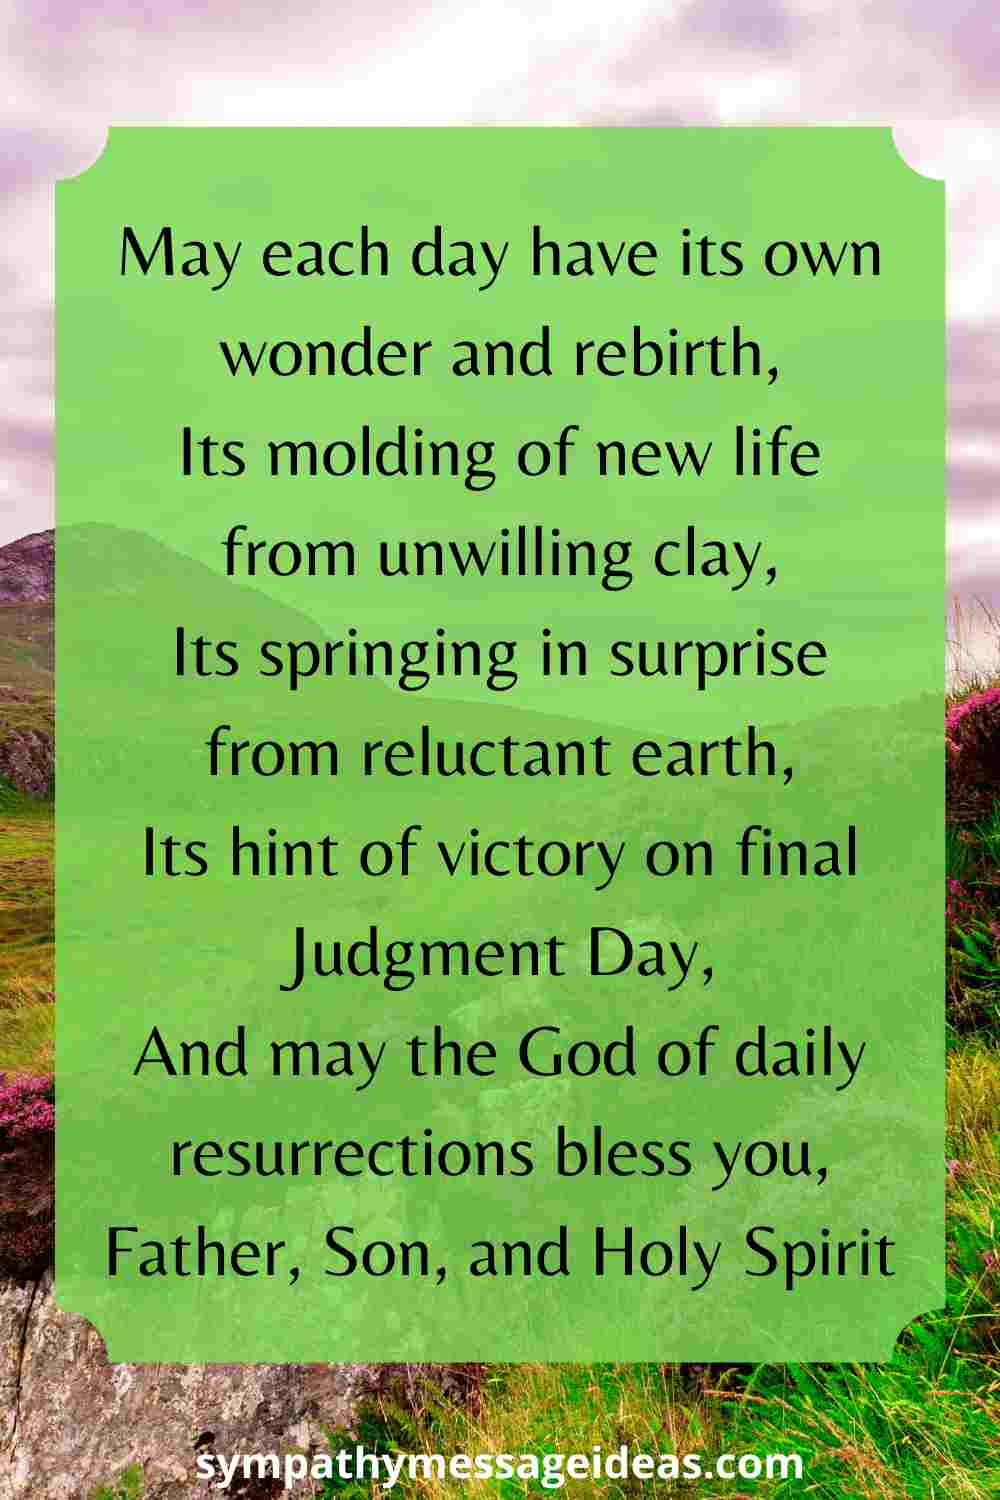 Irish blessing about life